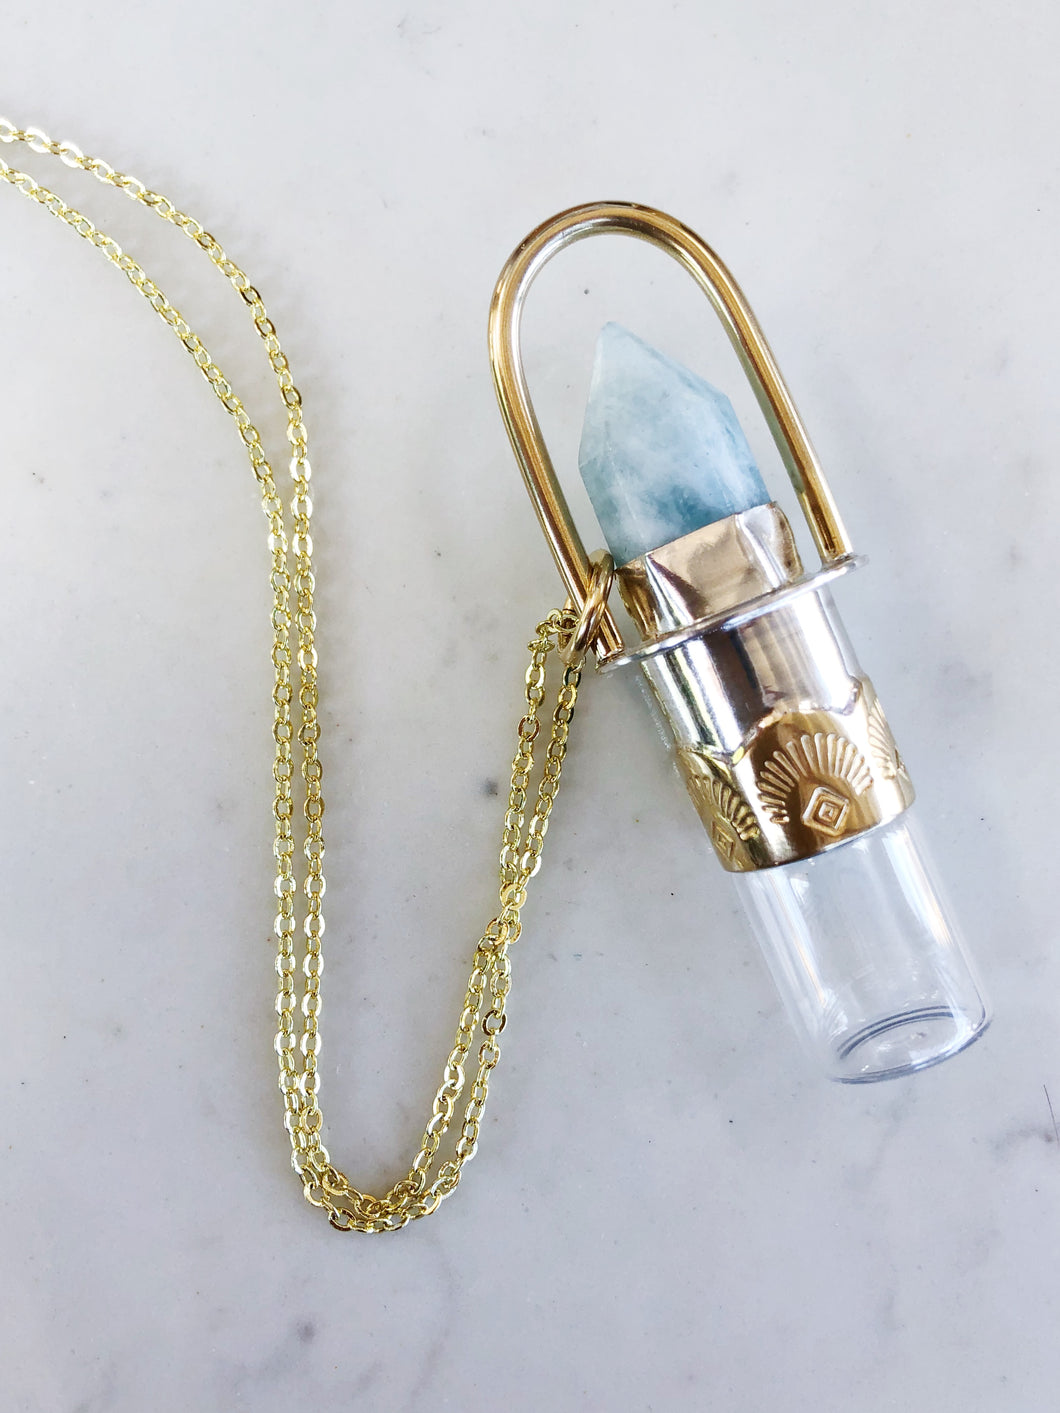 Mixed Metals Rollerball Necklace with Aquamarine